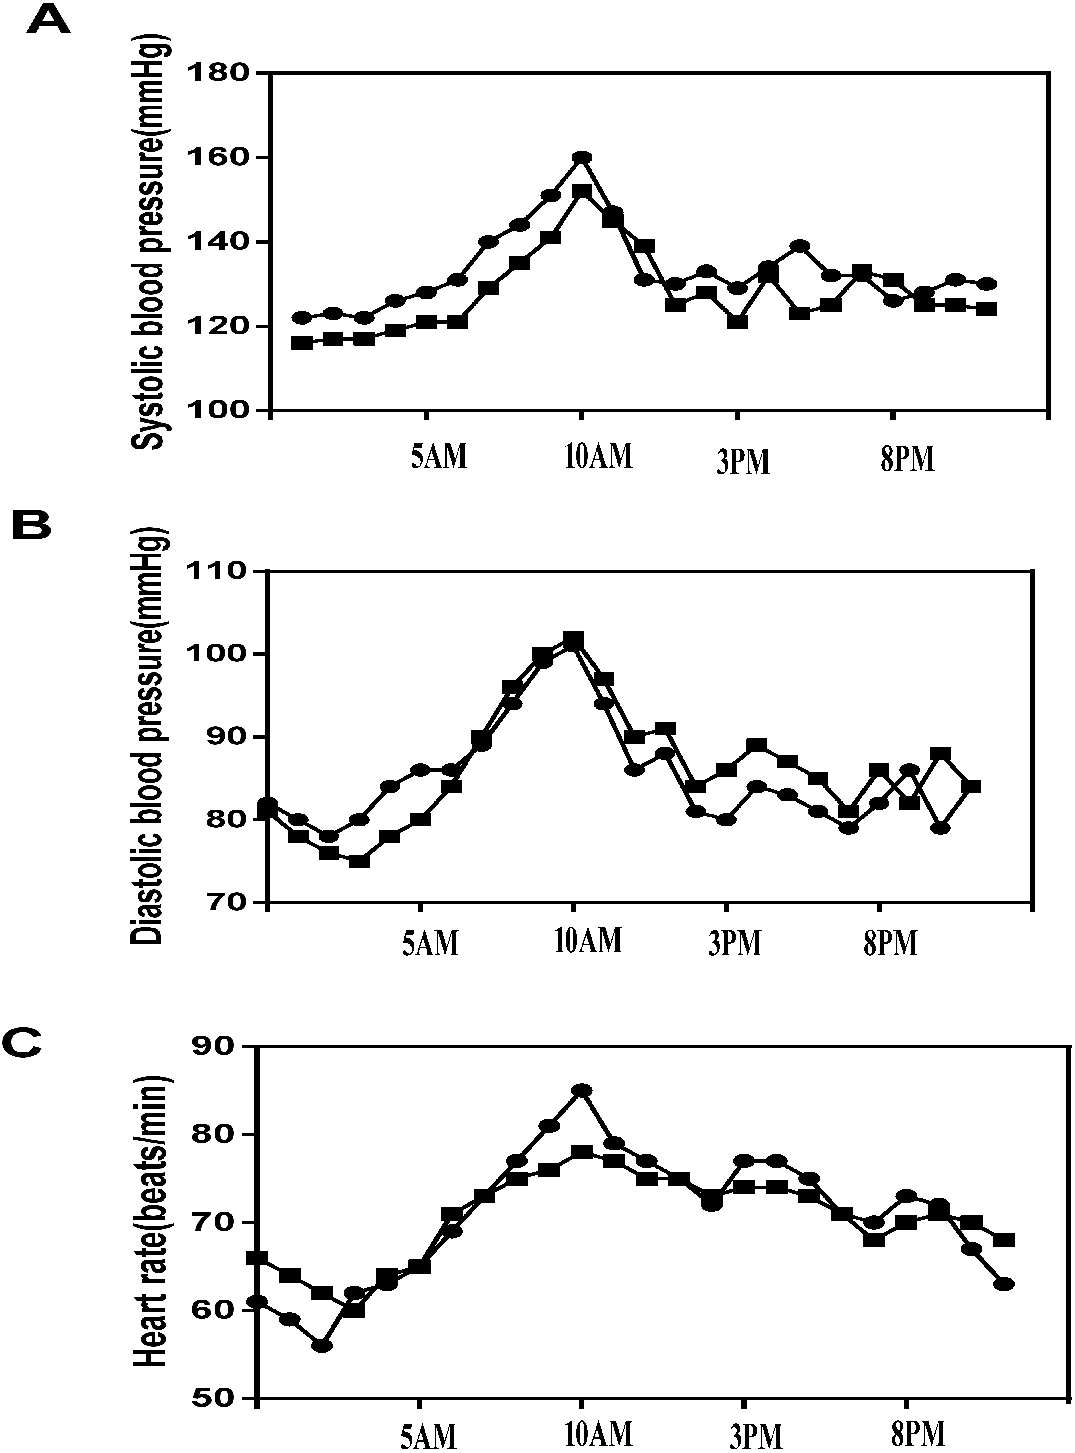 Morning surge in blood pressure and sympathetic activity in Mongolians and  Han Chinese: a multimodality investigation of hypertension and dyssomnia  [PeerJ]